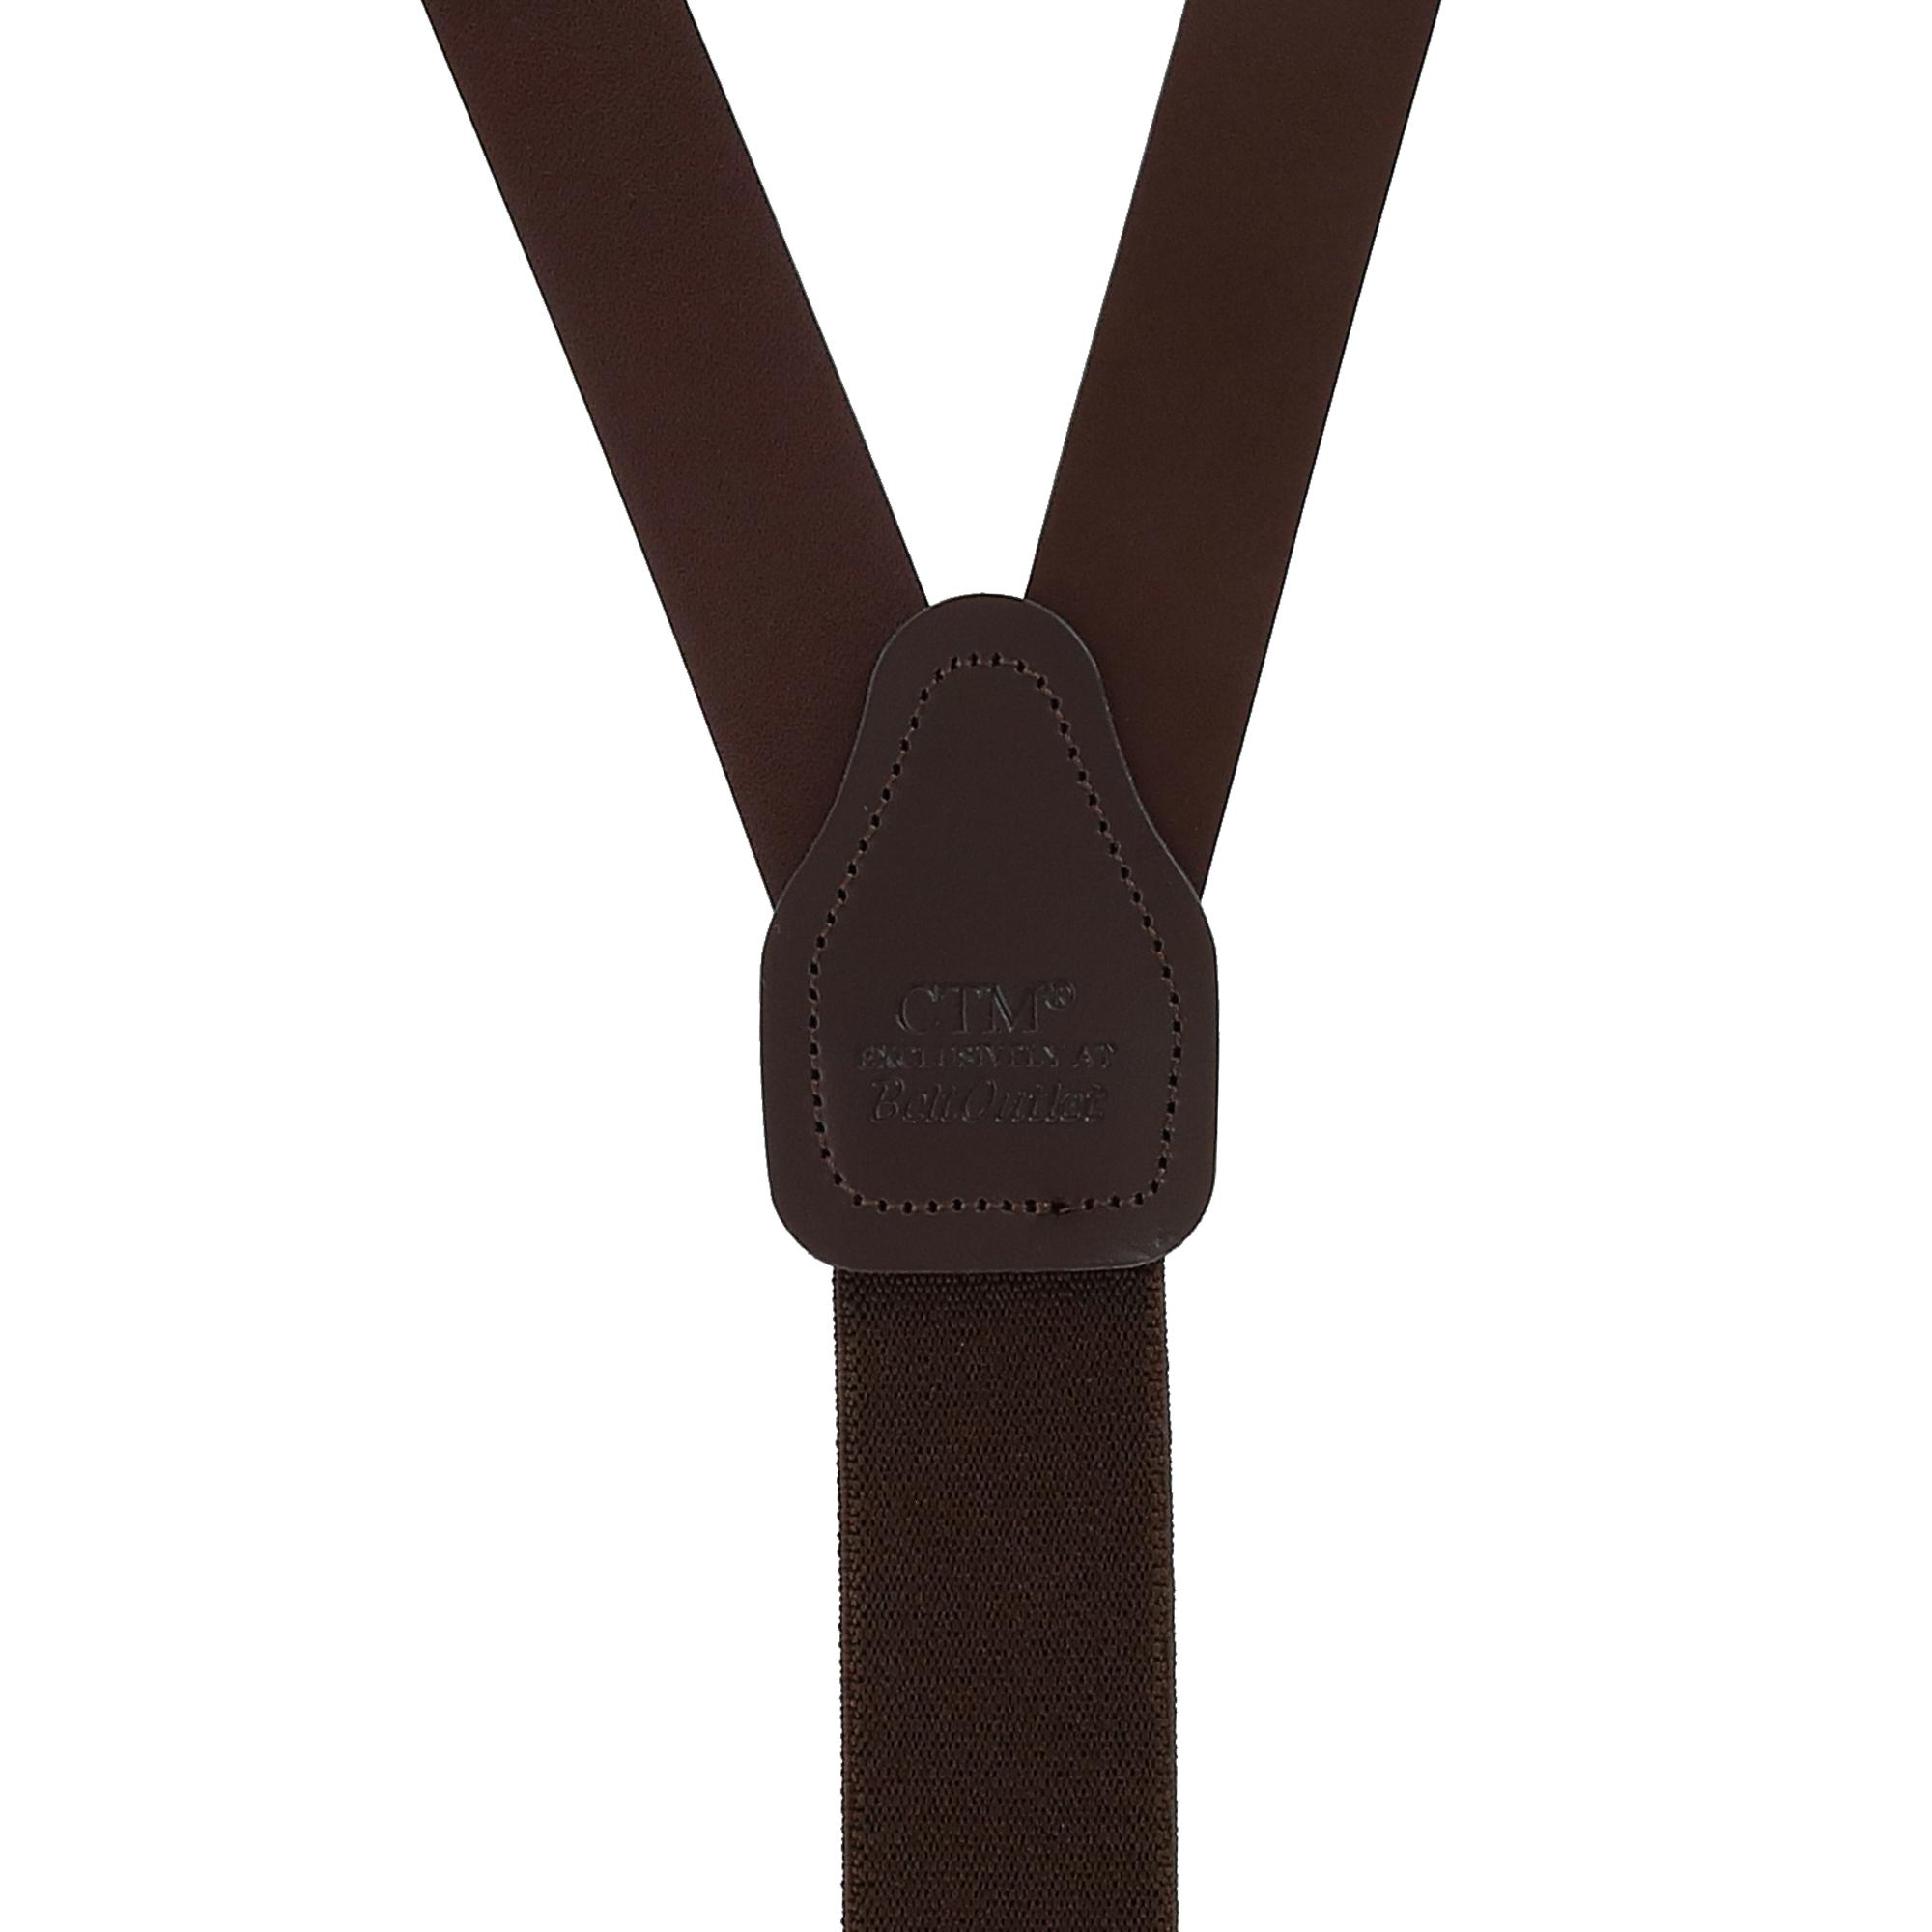 New CTM Men/'s Leather Clip End Suspenders with Buckle Strap Tall Available